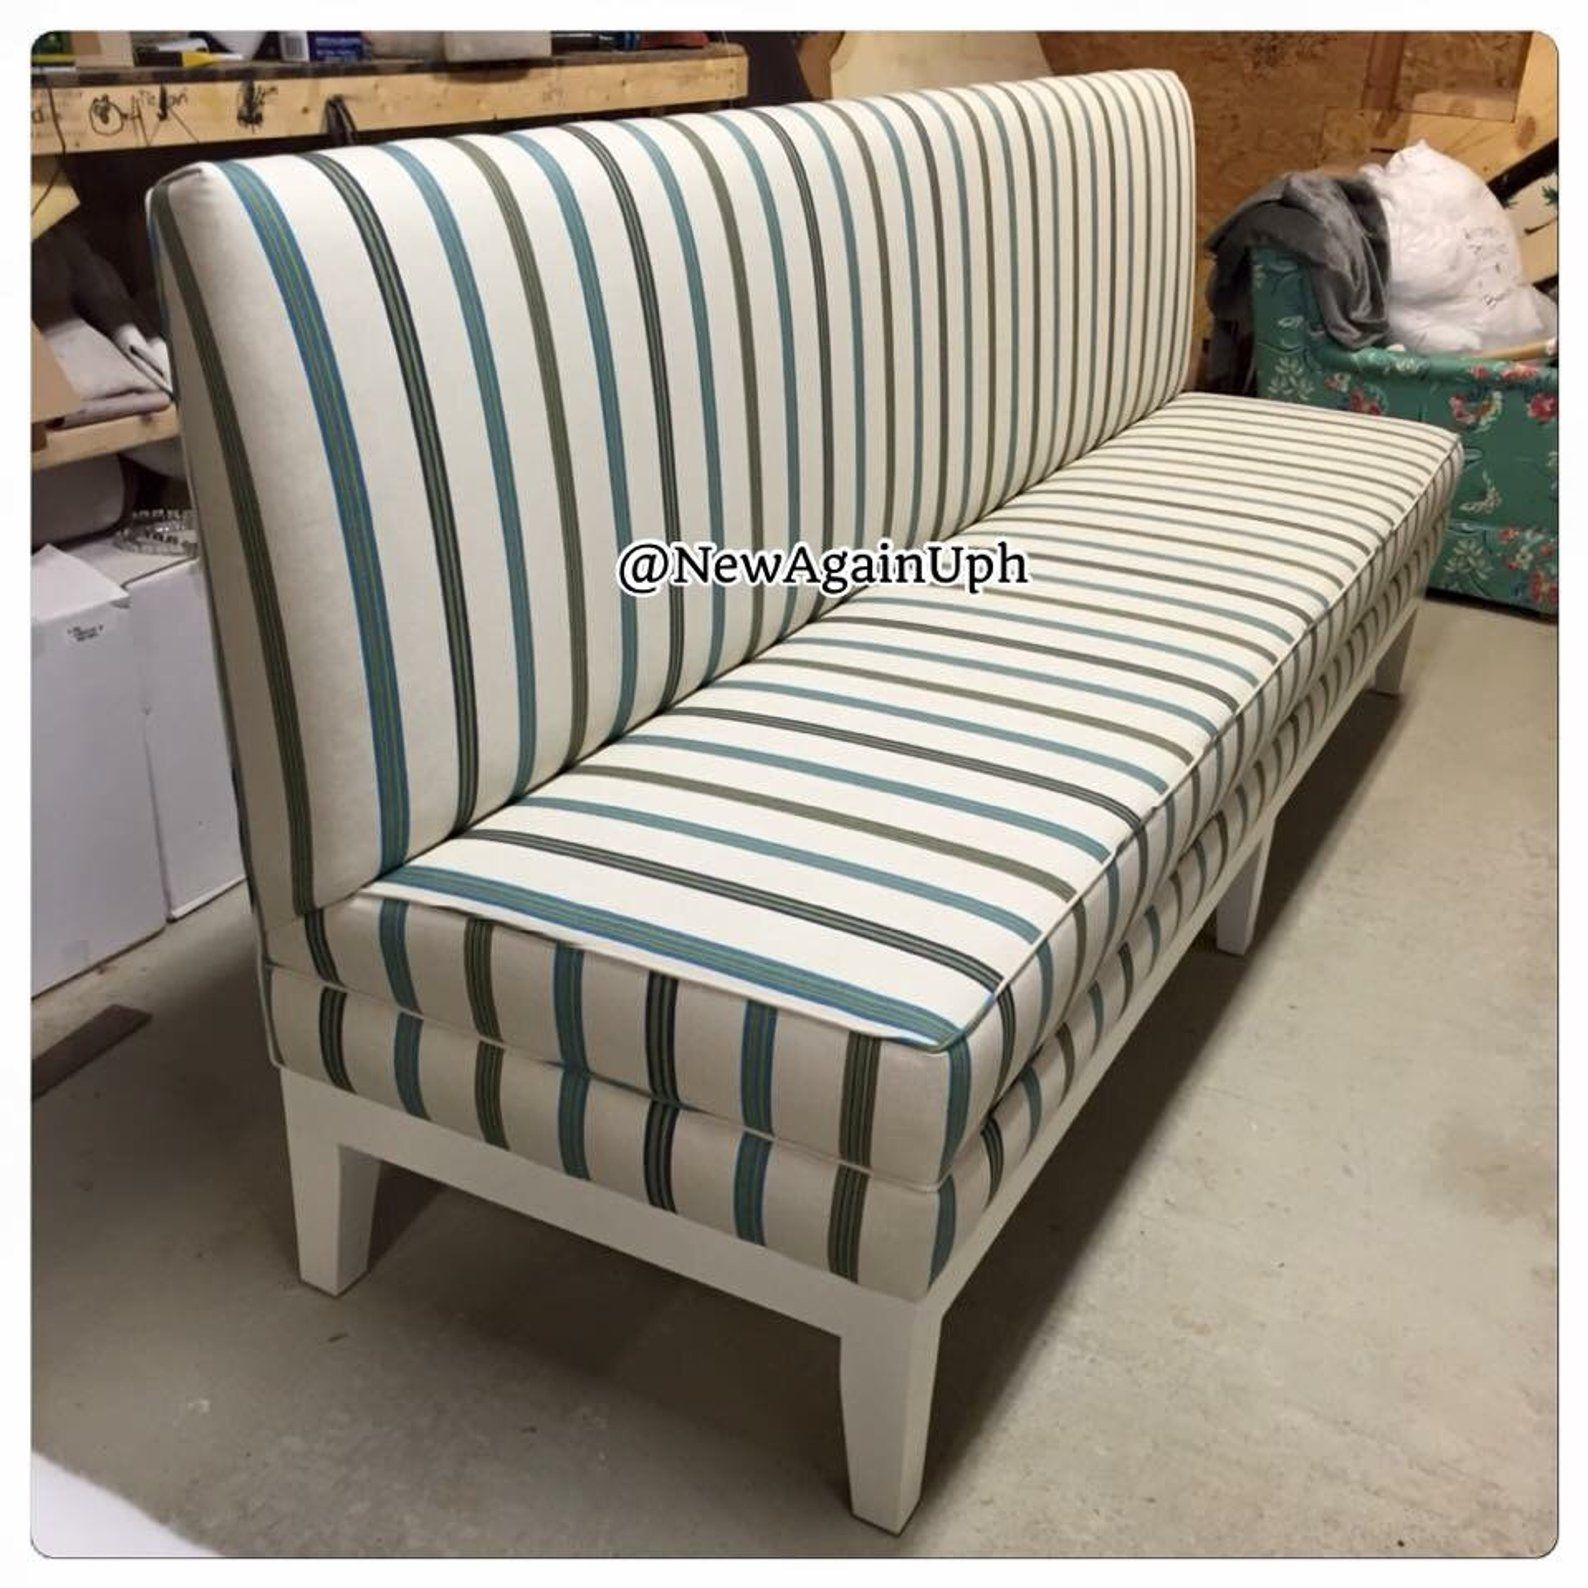 Kitchen Bench Upholstered Kitchen Bench Custom Bench Upholstered Bench Banquette Booth Custom Booth Dining Room Seating Dining Room Bench images